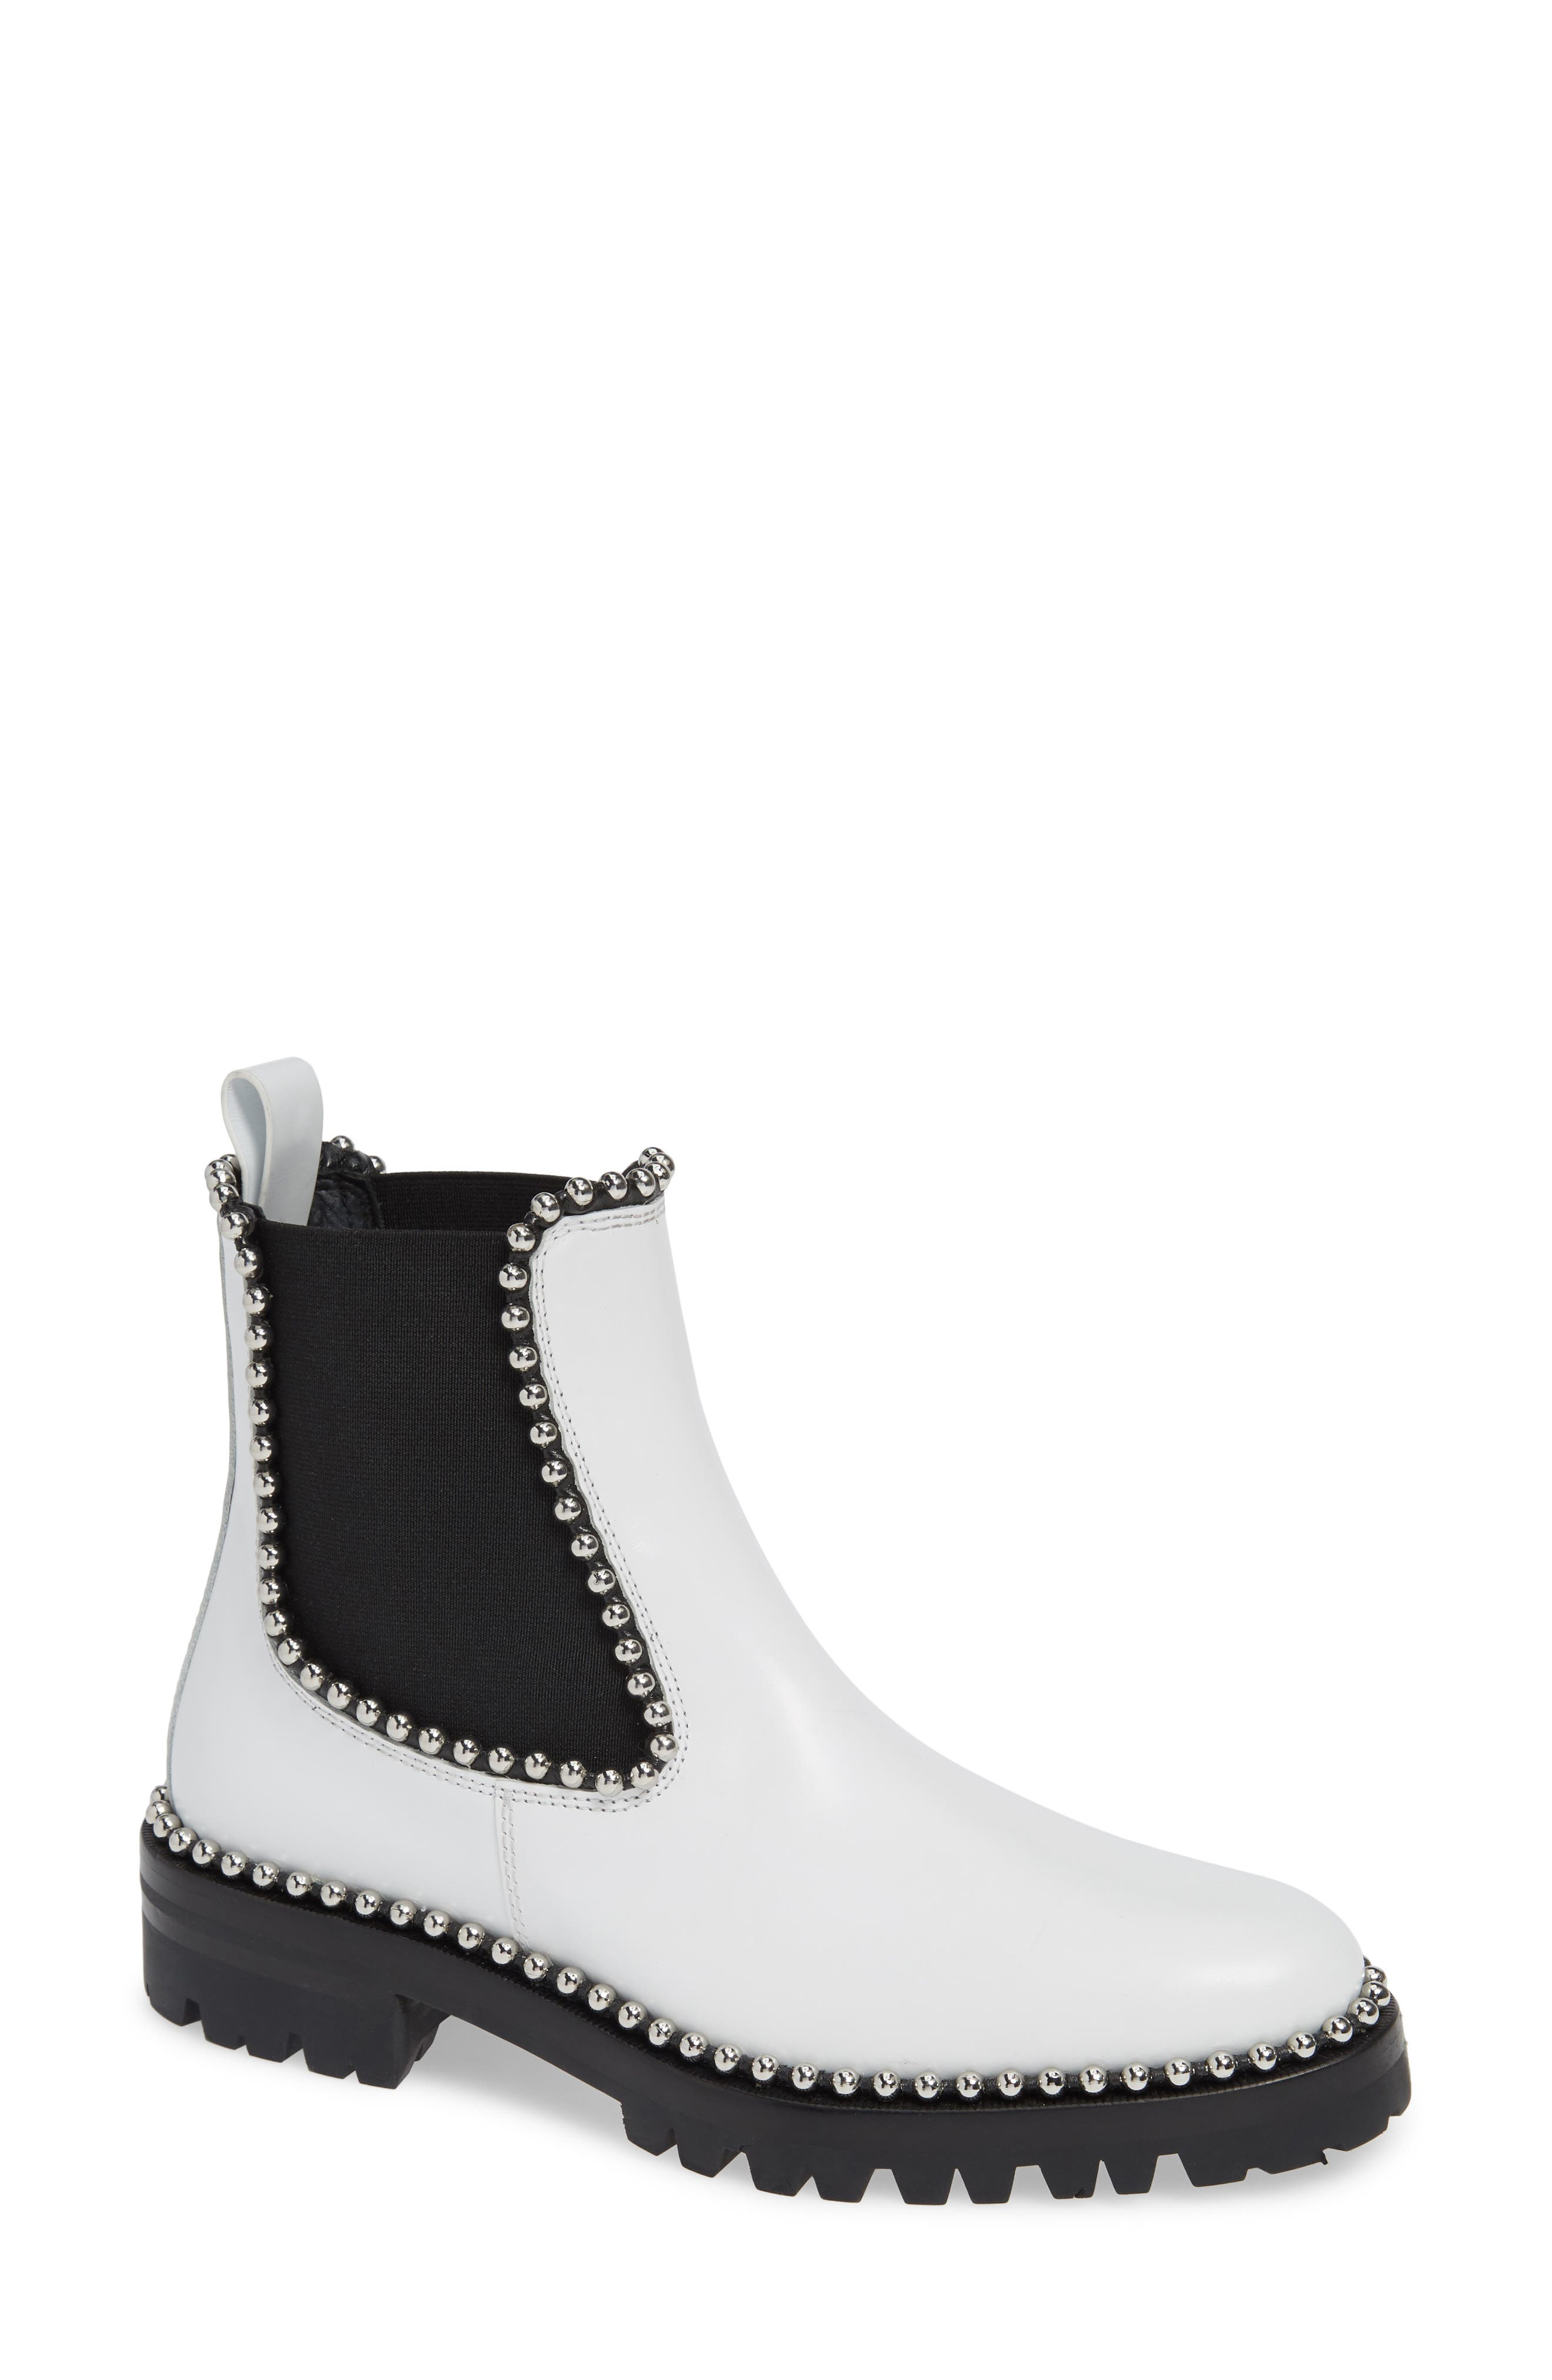 ALEXANDER WANG, Spencer Chelsea Boot, Main thumbnail 1, color, WHITE LEATHER